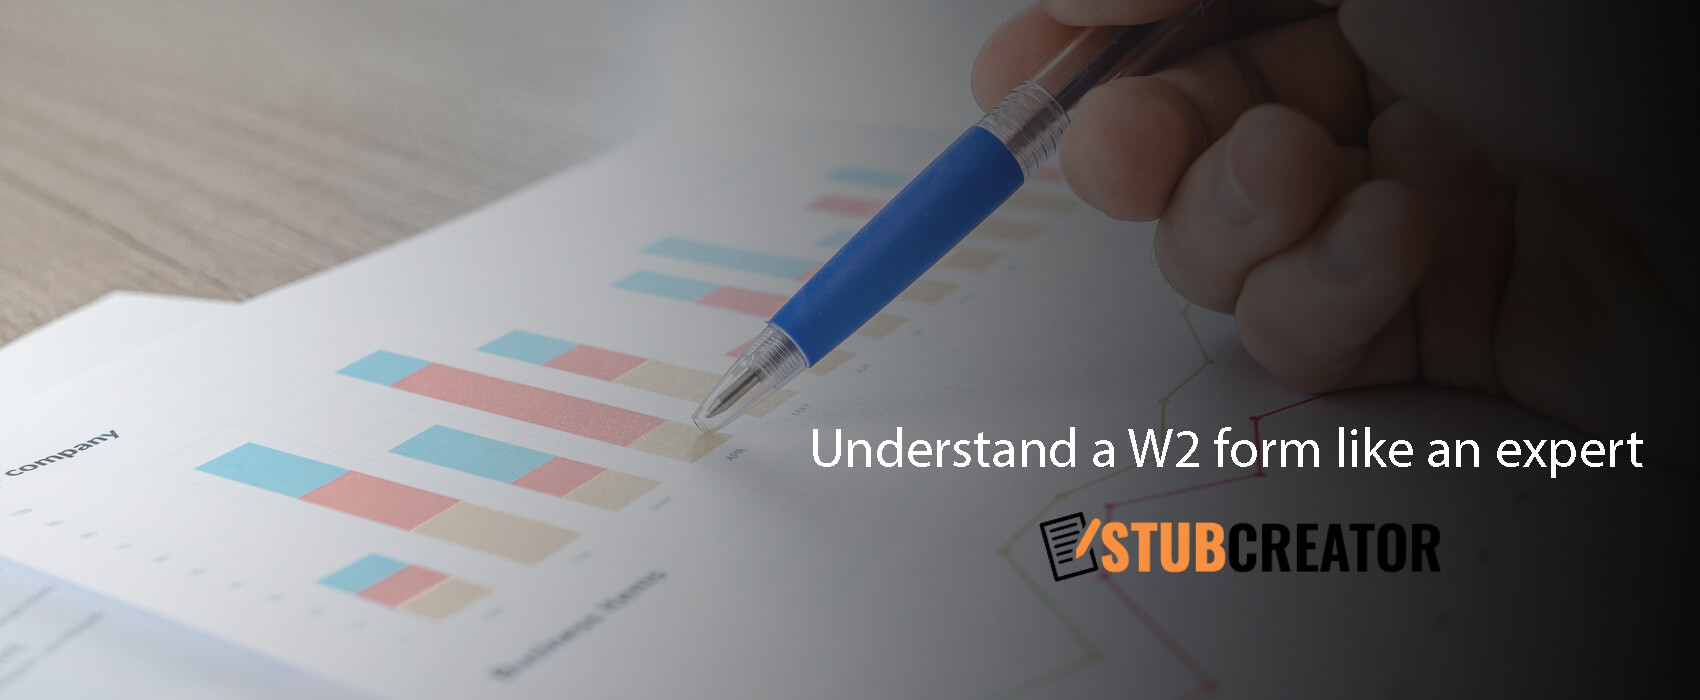 w2 form creator  Understand a W13 form like an expert - Stub Creator